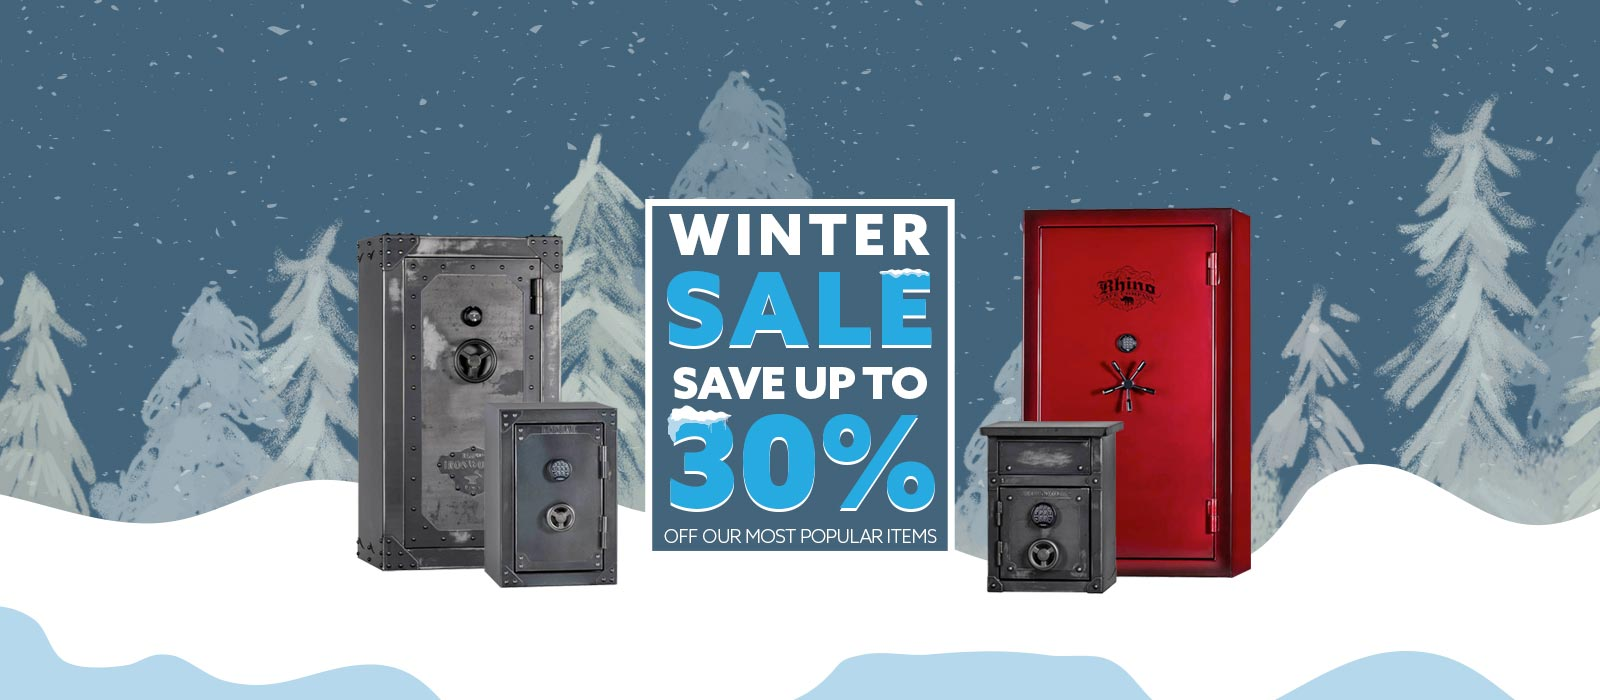 Winter Sale! - Up to 30% off Our Most Popular Items!